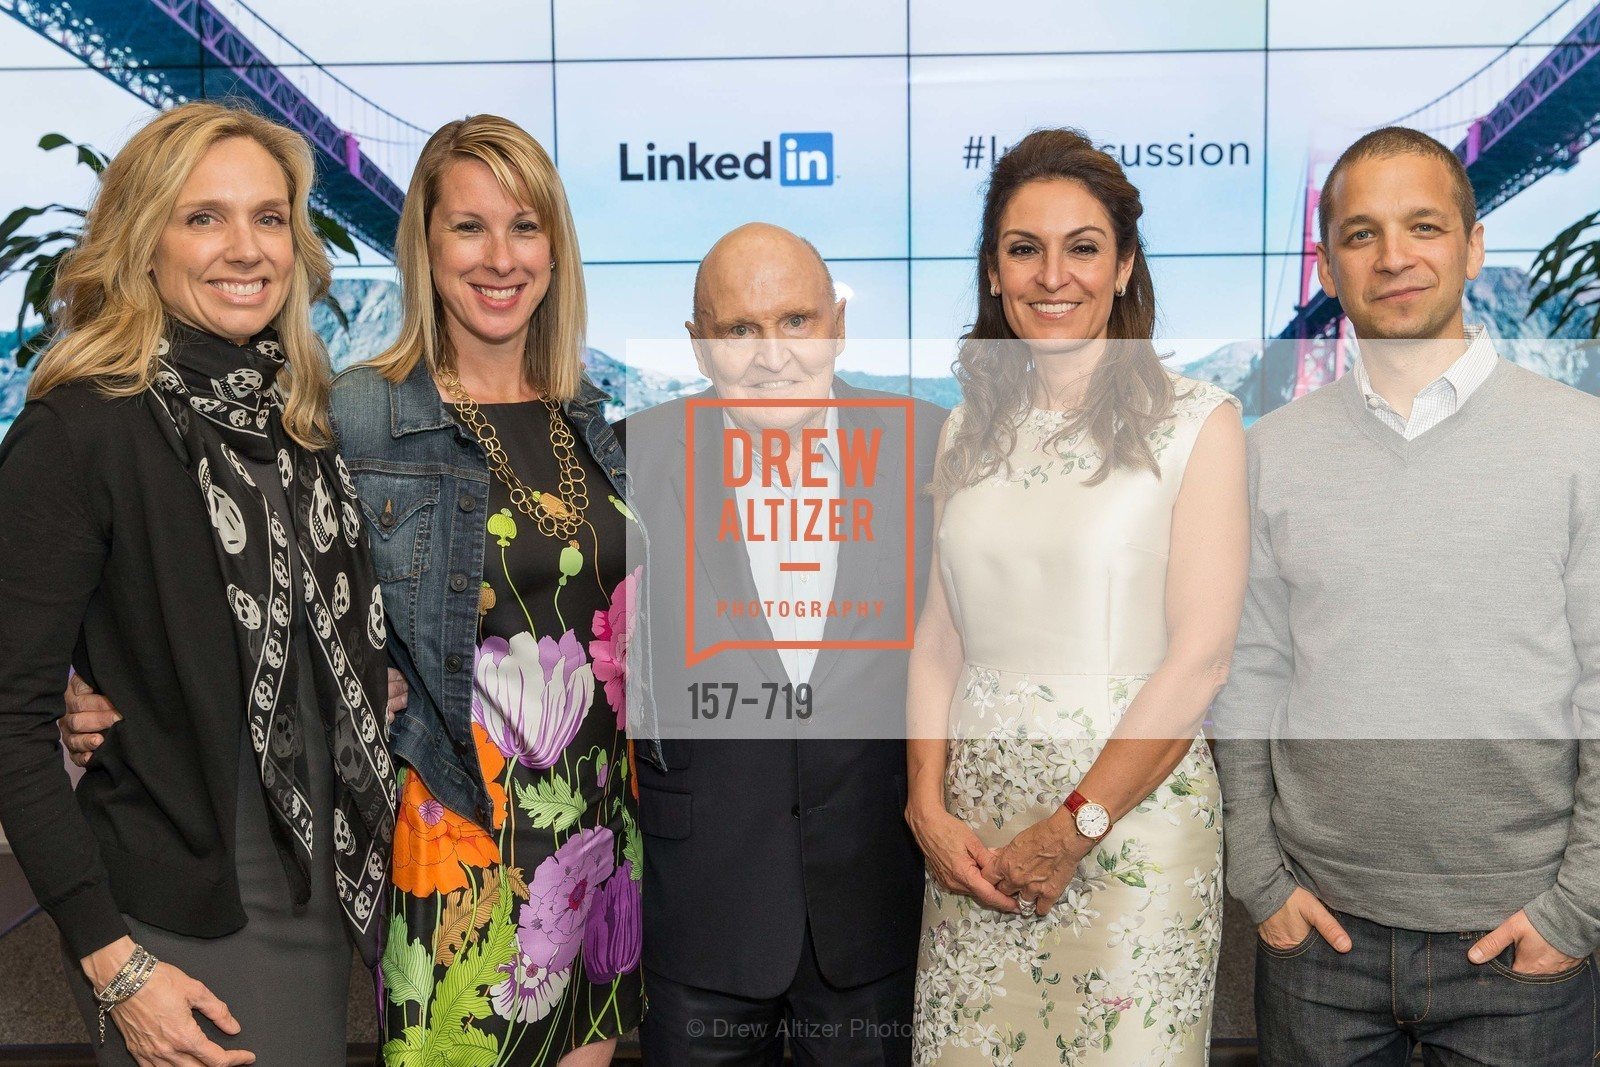 Catherine Fisher, Shannon Stubo, Jack Welch, Suzy Welch, Dan Roth, THE LINKEDIN Discussion Series featuring Jack and Suzy Welch with LinkedIn Executive Editor Dan Roth, US, May 12th, 2015,Drew Altizer, Drew Altizer Photography, full-service agency, private events, San Francisco photographer, photographer california